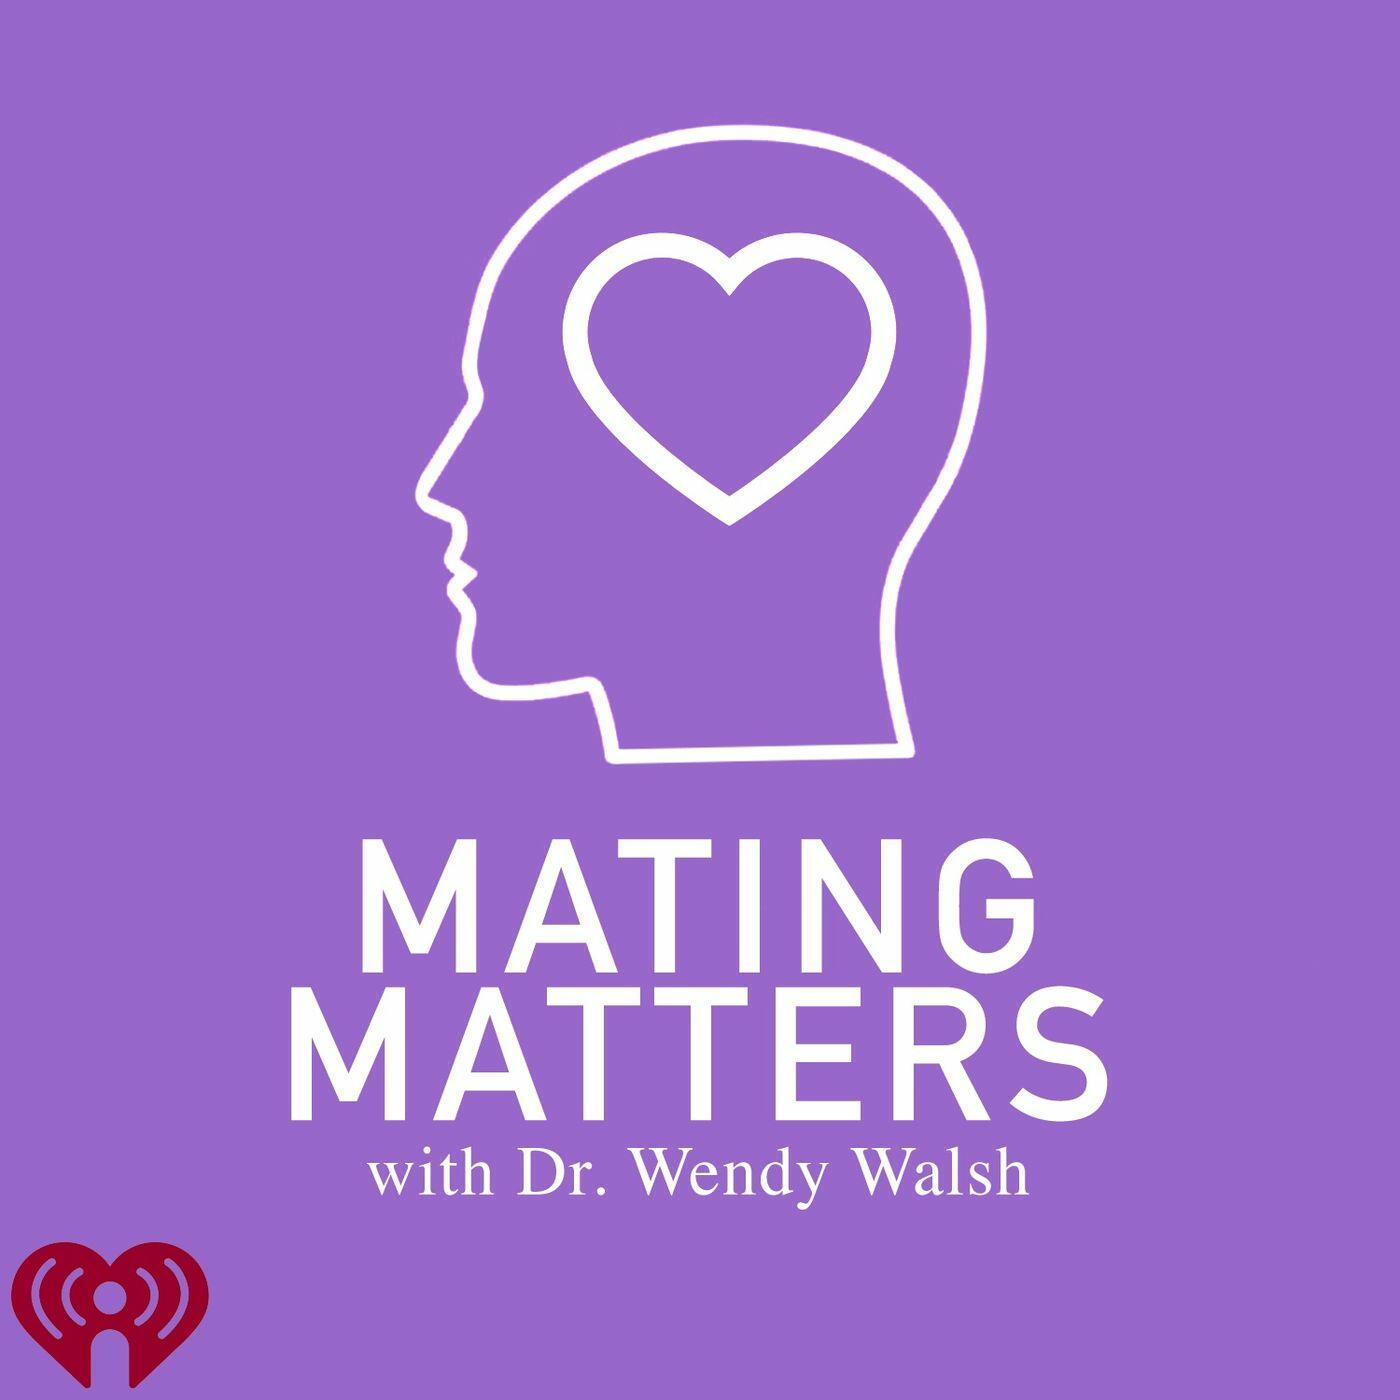 Listen to the Mating Matters Episode - Quickie: Is Monogamy Natural? on iHeartRadio | iHeartRadio